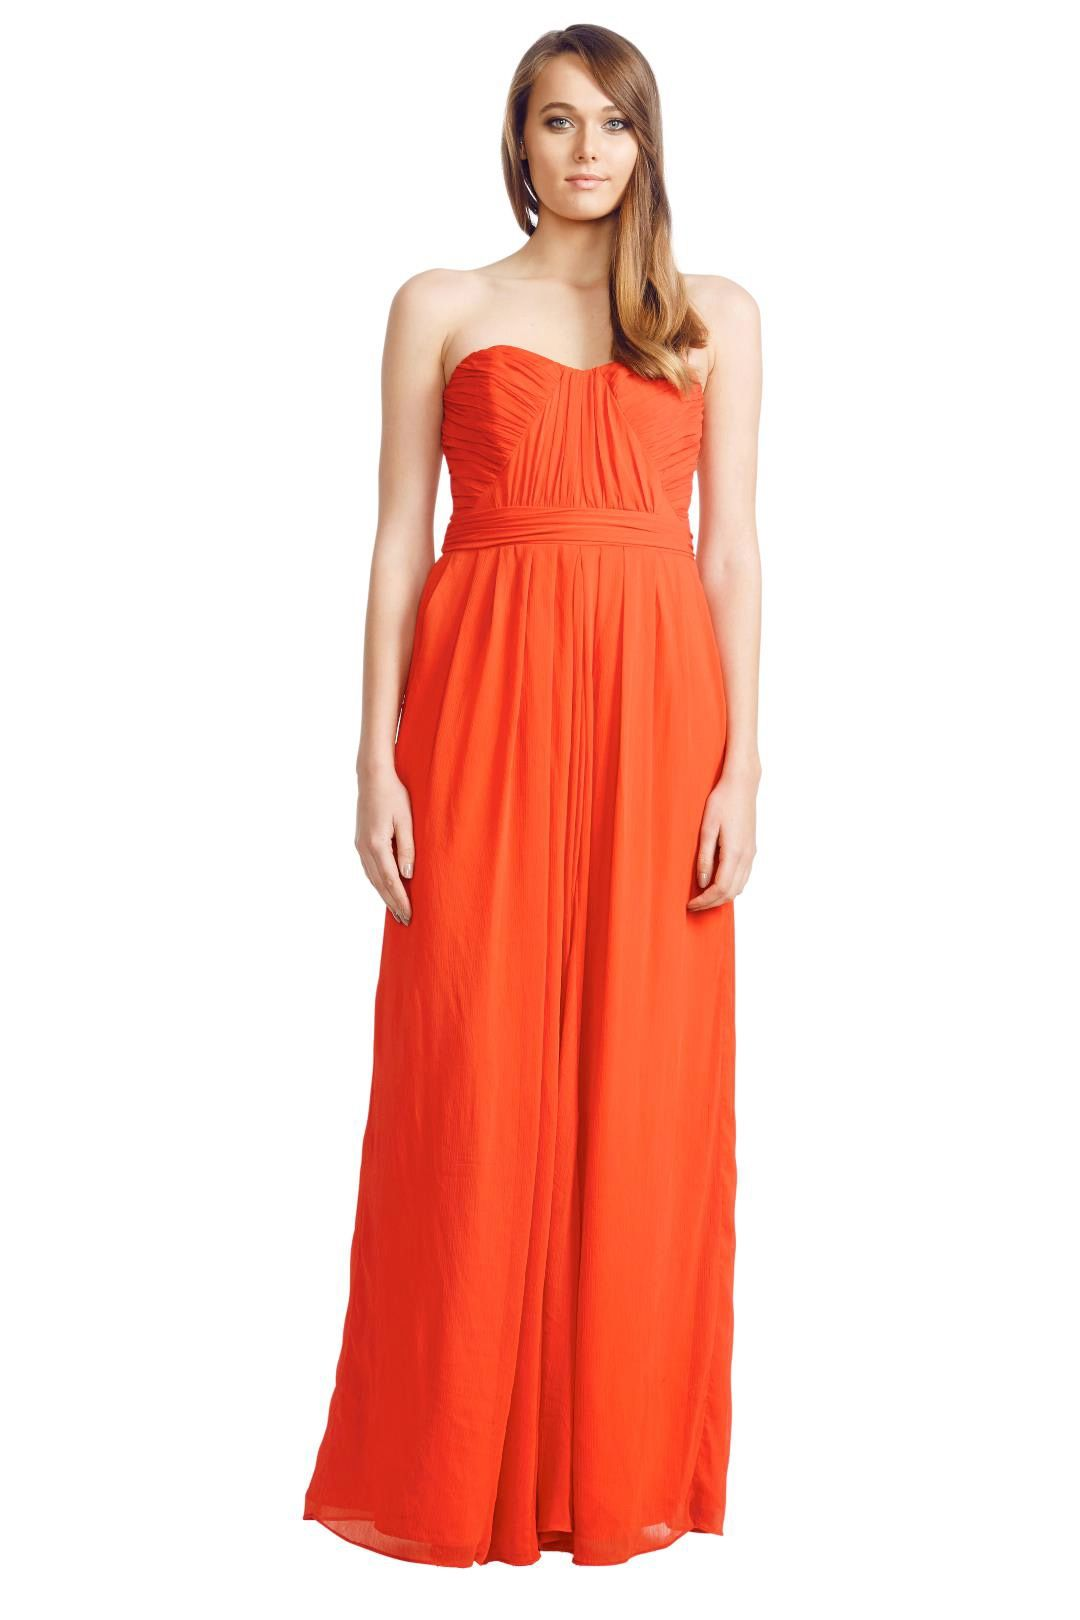 Badgley Mischka - Sweetheart Bodic Gown - Orange Red - Front